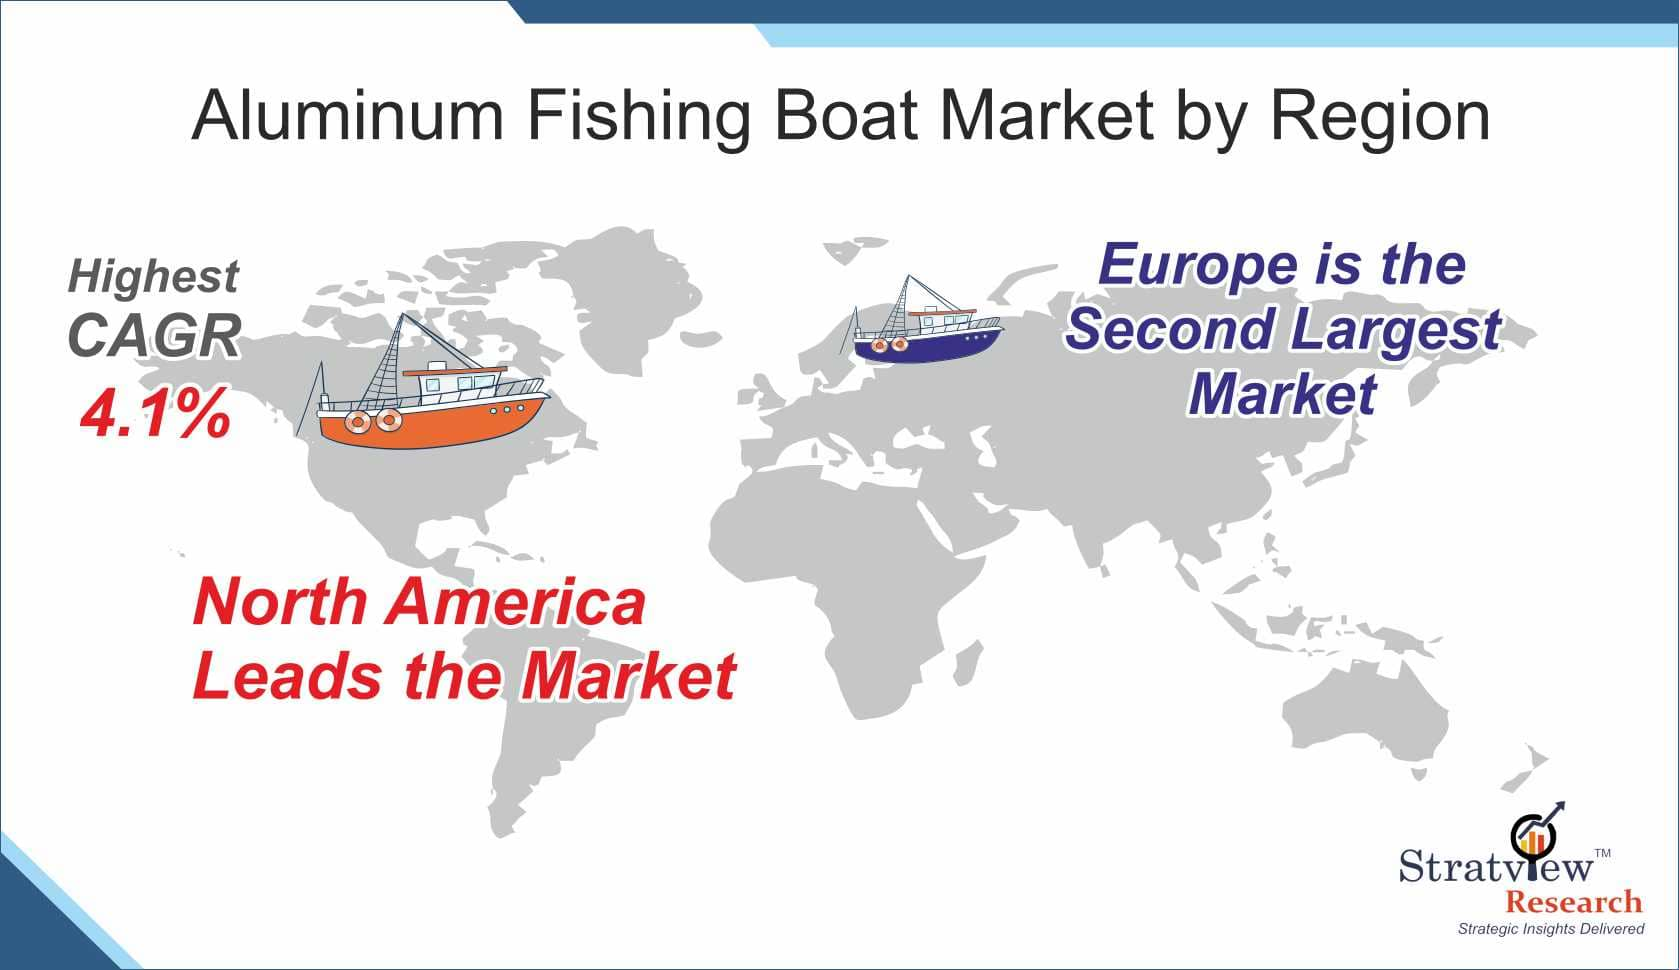 Aluminum Fishing Boat Market Share